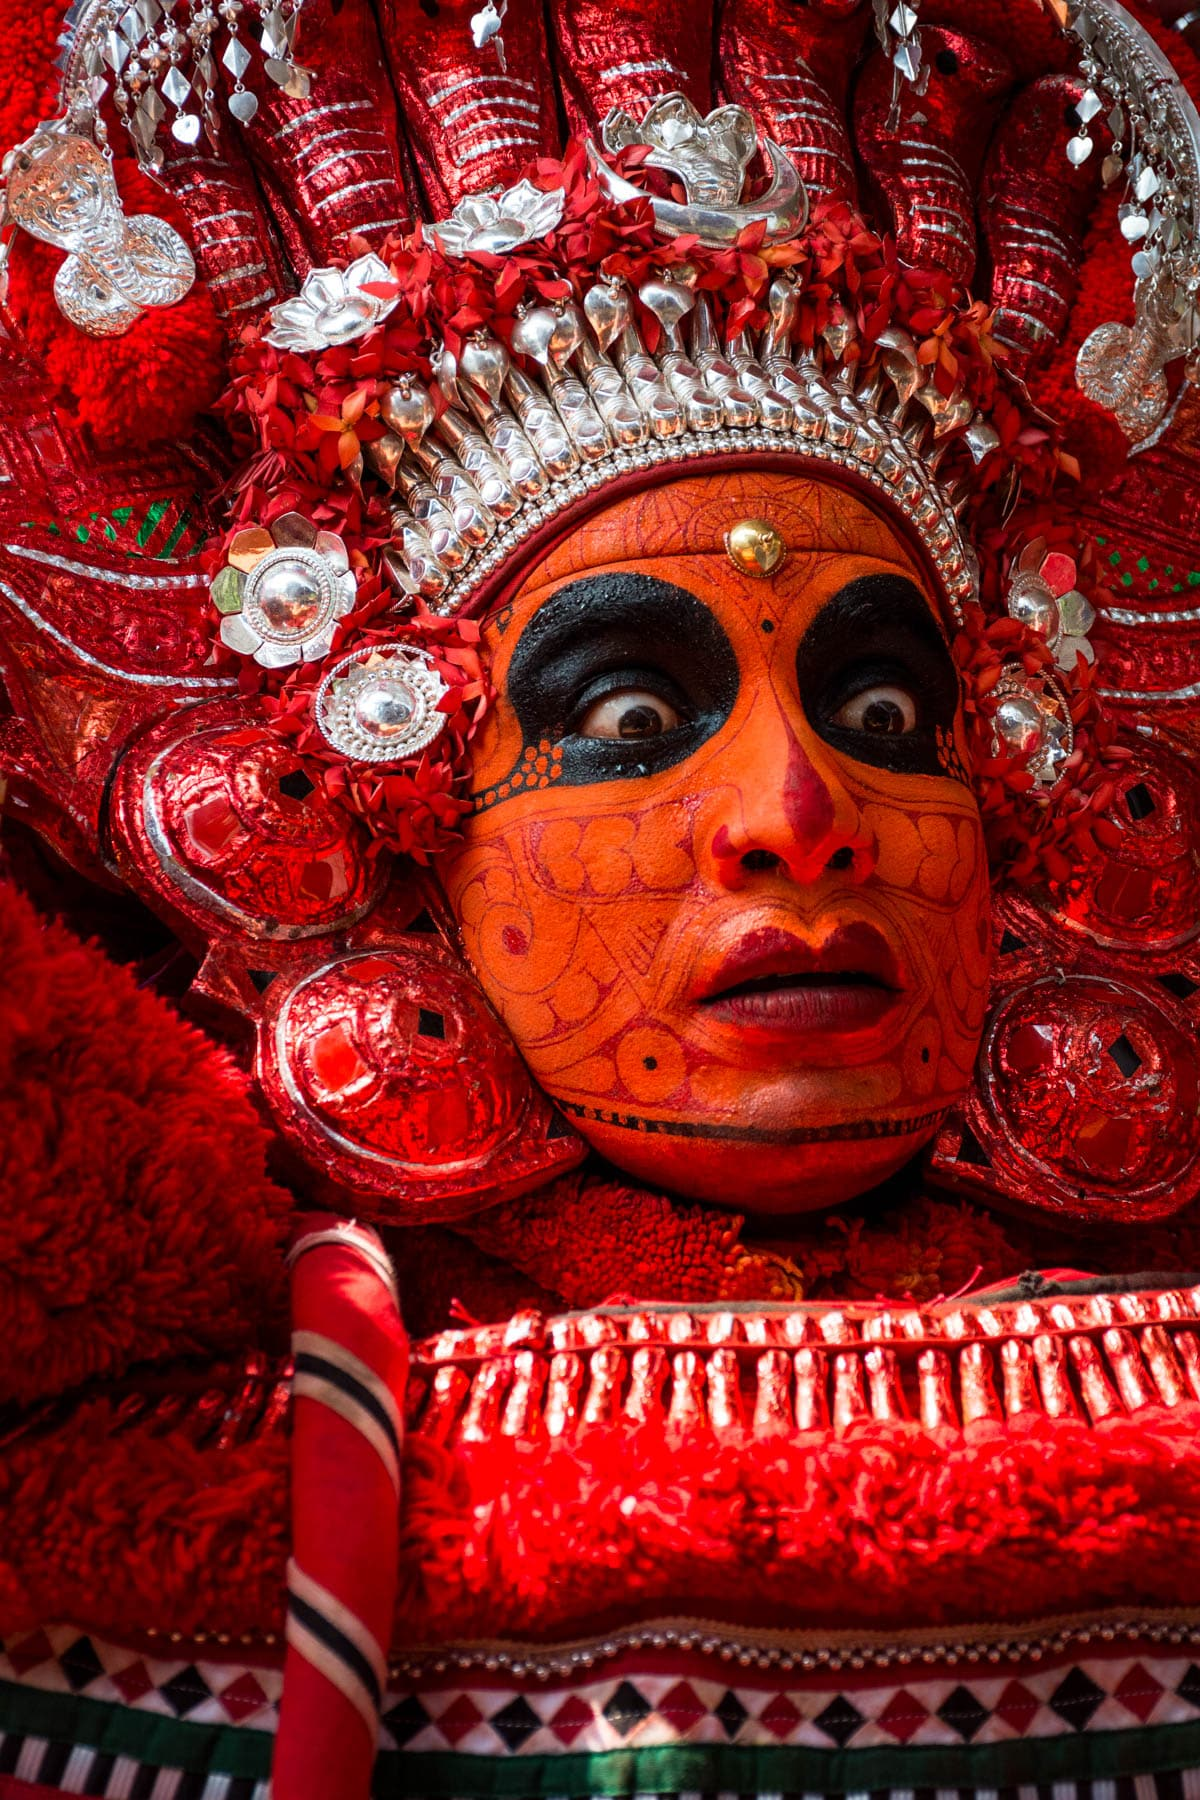 Wild costumes help Theyyam dancers to channel gods during their performance. Just one of many reasons Theyyam dance in Kerala is one of India's off the beaten track highlights!